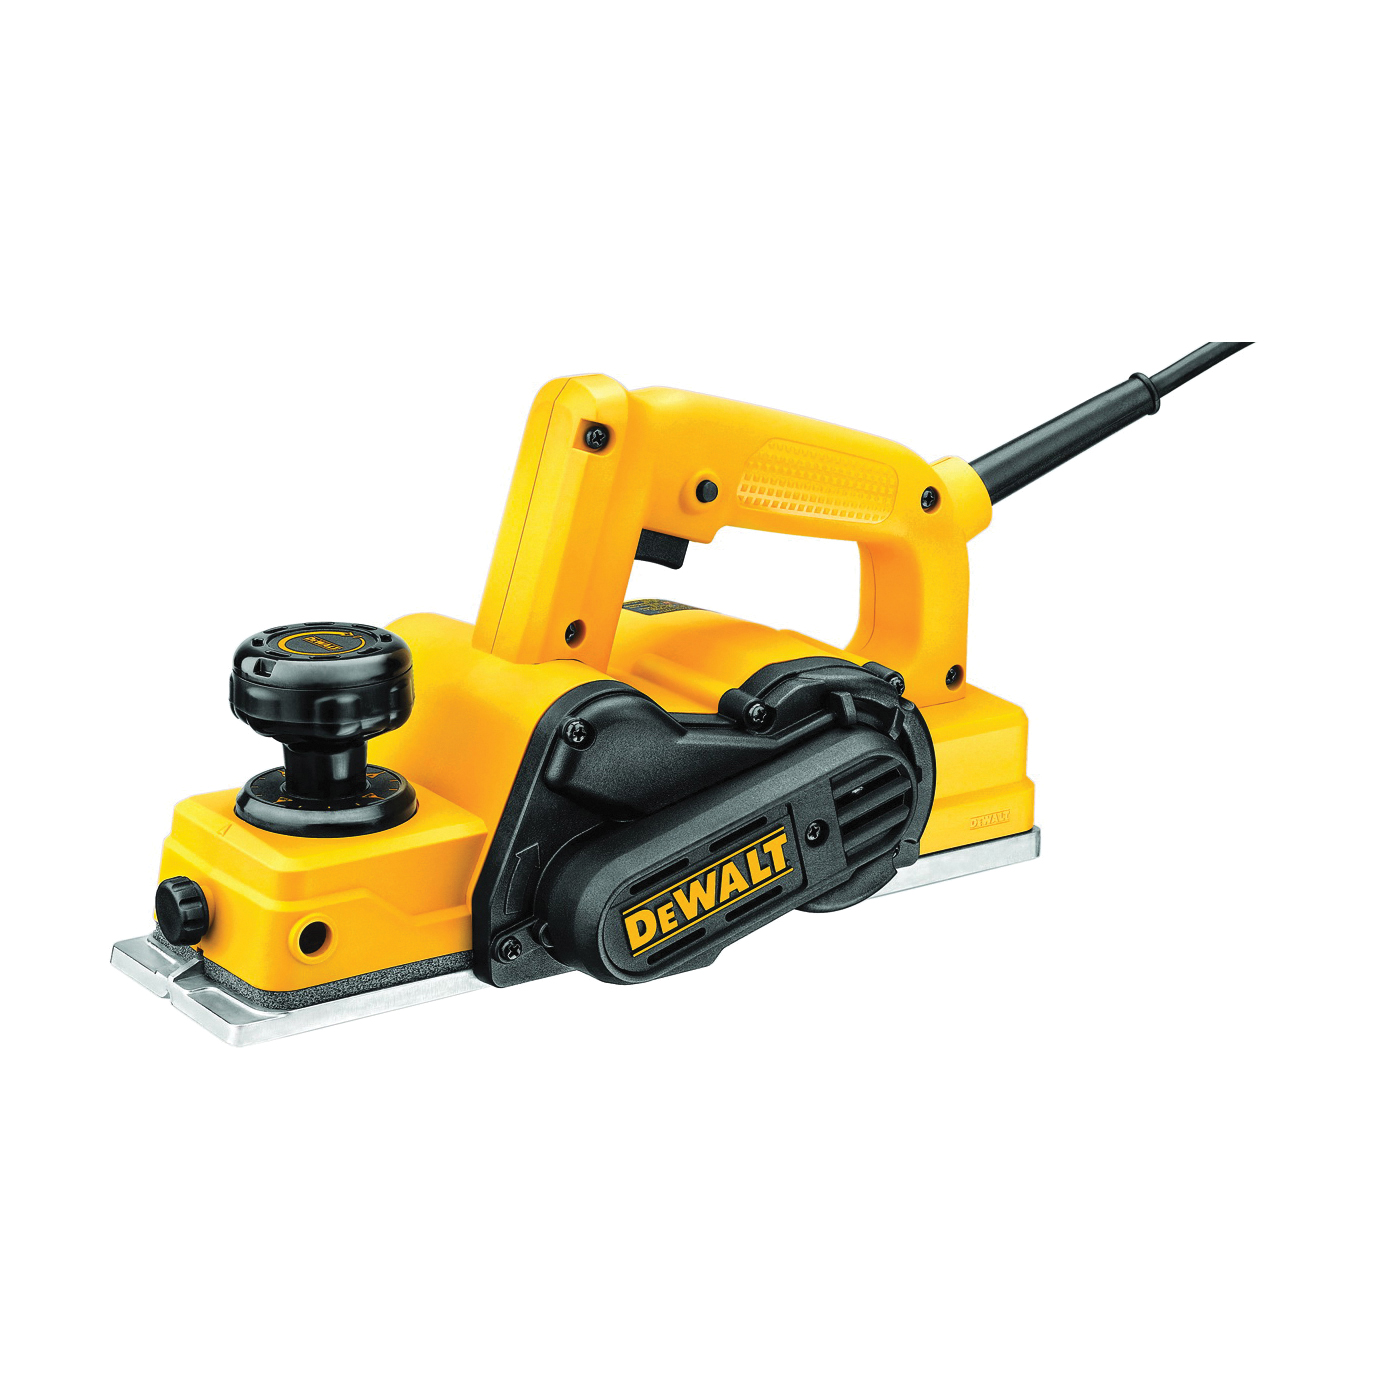 Picture of DeWALT D26676 Hand Planer, 120 V, 5.5 A, 3-1/4 in W Planning, 1/16 in D Planning, 17,000 rpm No Load